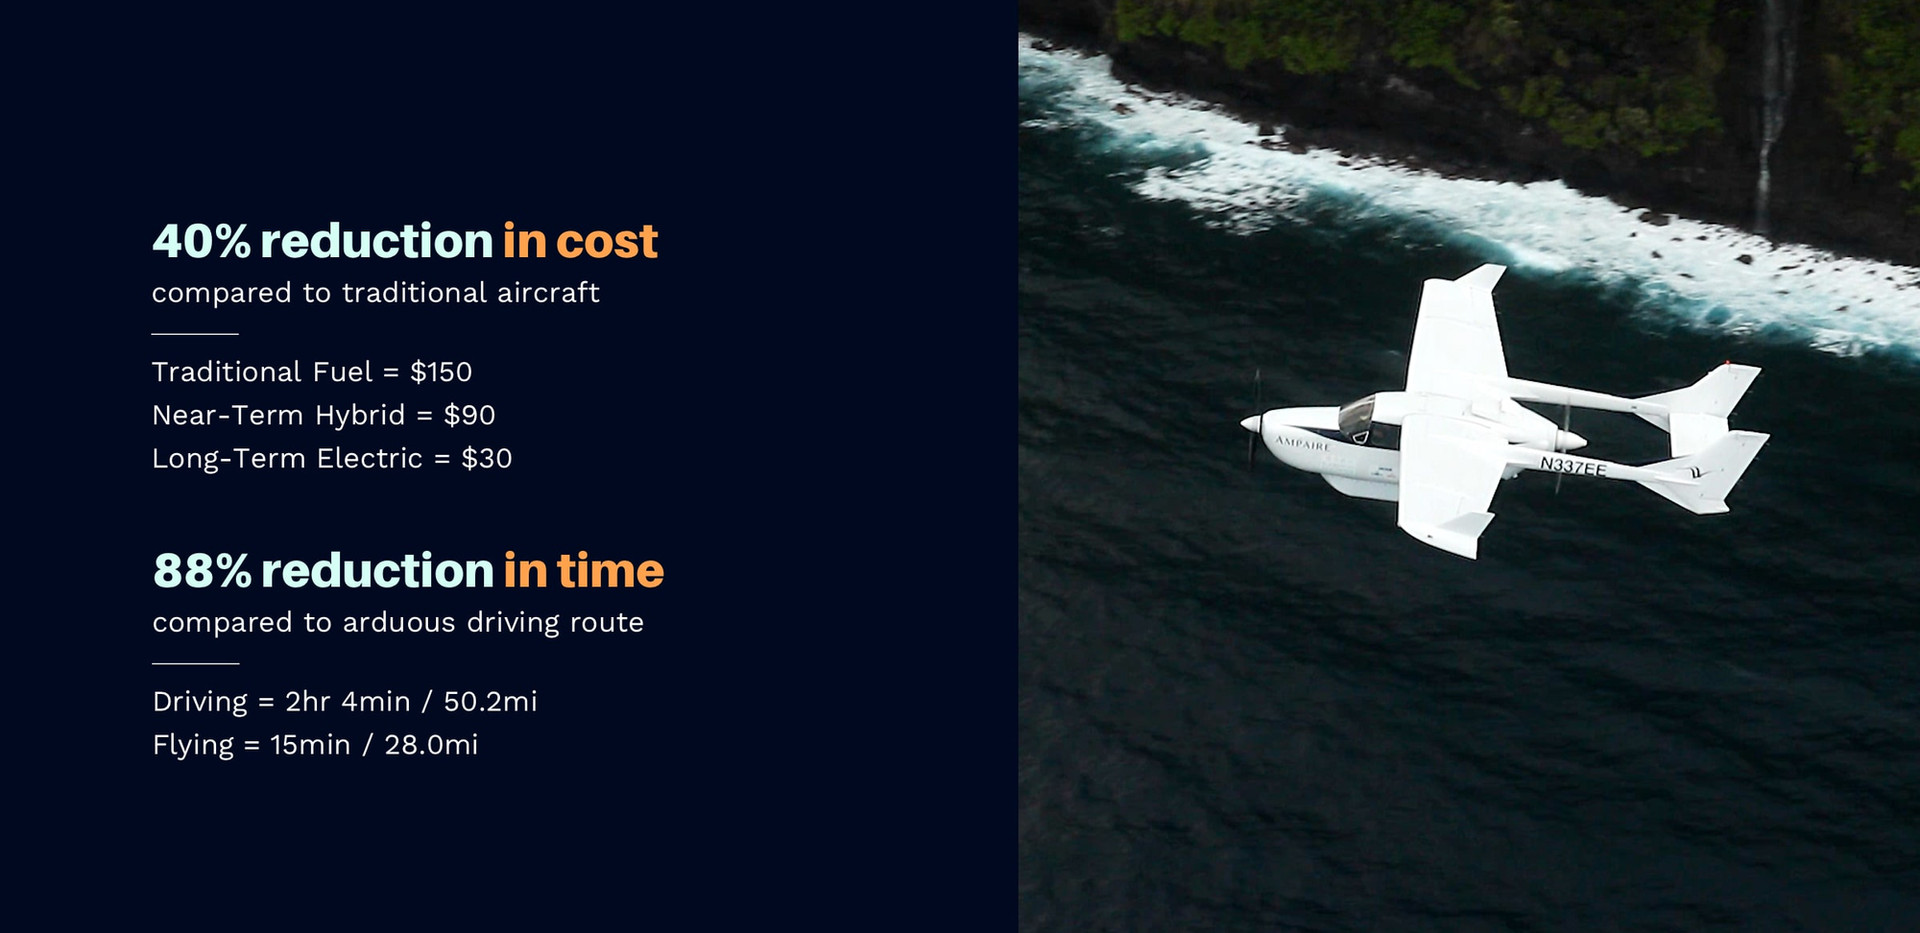 """Photograph of the Electric EEL aircraft flying along Maui's coast. Top text reads """"40% reduction in cost compared to traditional aircraft, traditional fuel = $150, near-term hybrid = $90, long-term electric = $30"""". Bottom text reads """"88% reduction in time compared to arduous driving route, driving = 2 hours and 4 minutes / 50.2 miles, flying = 15 minutes / 28 miles"""""""